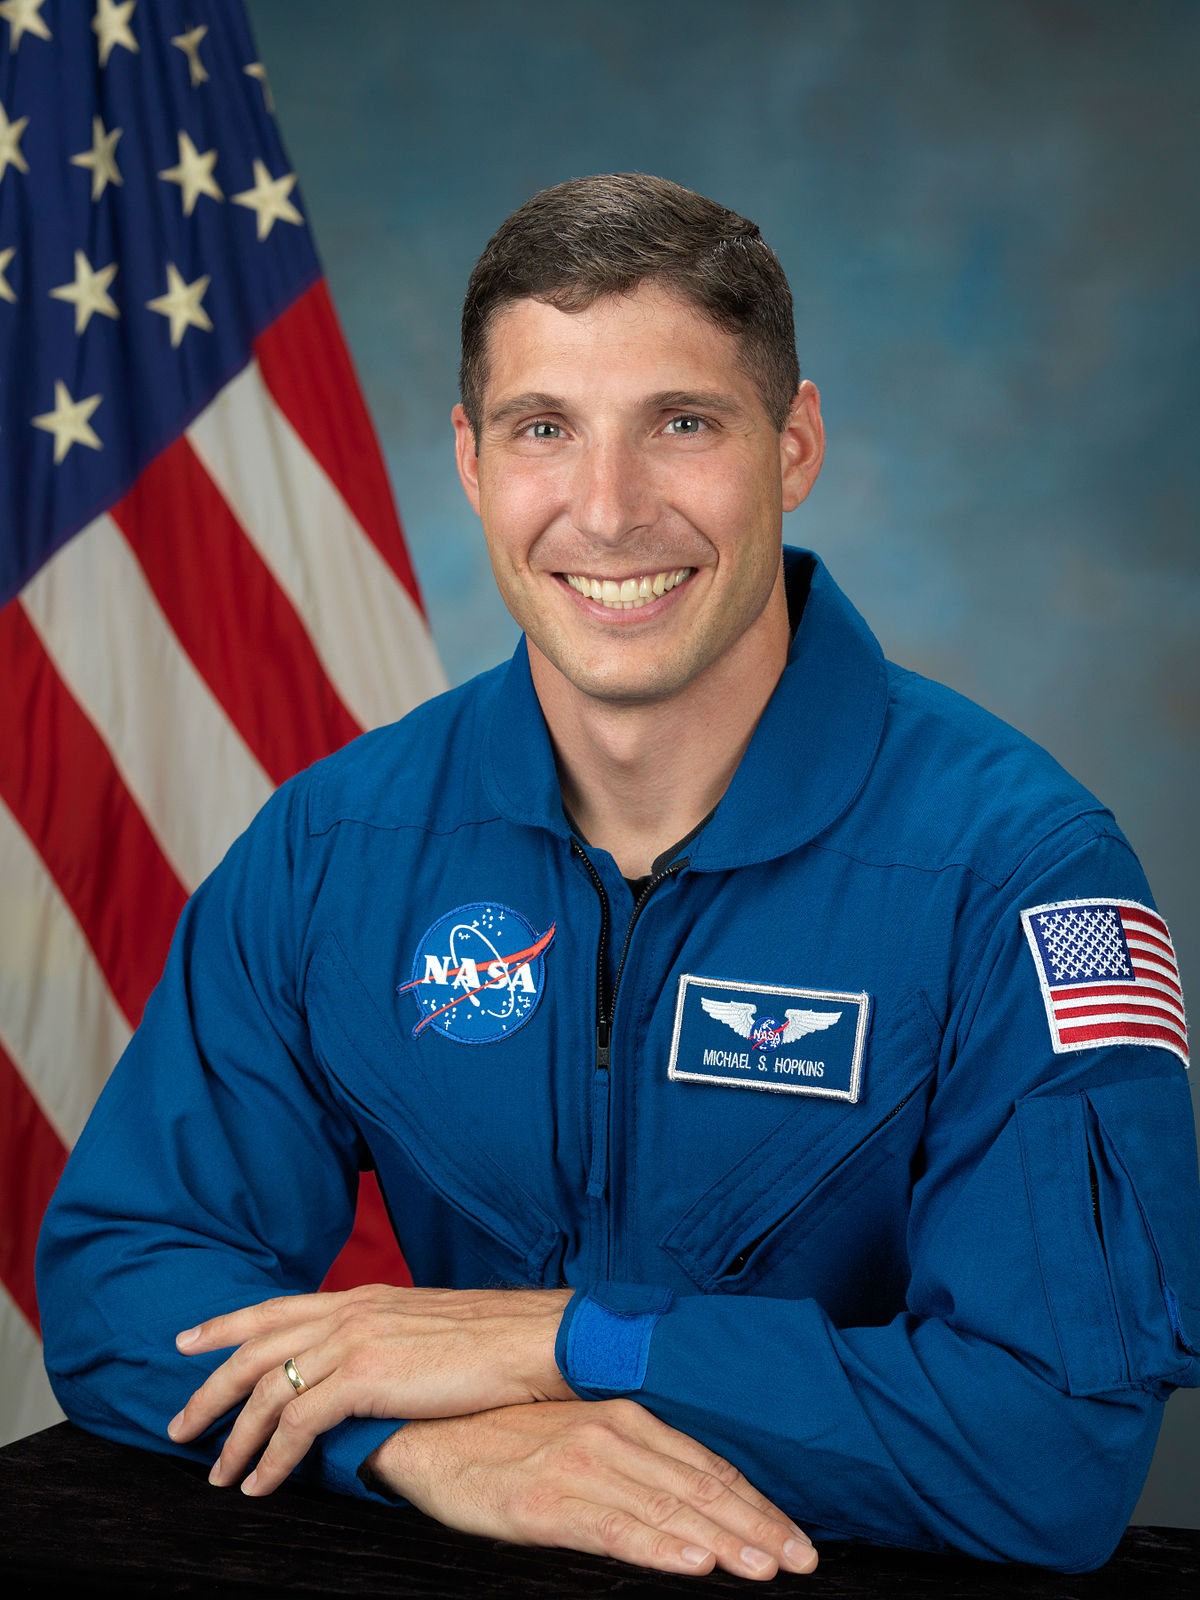 mike hopkins nasa - photo #5